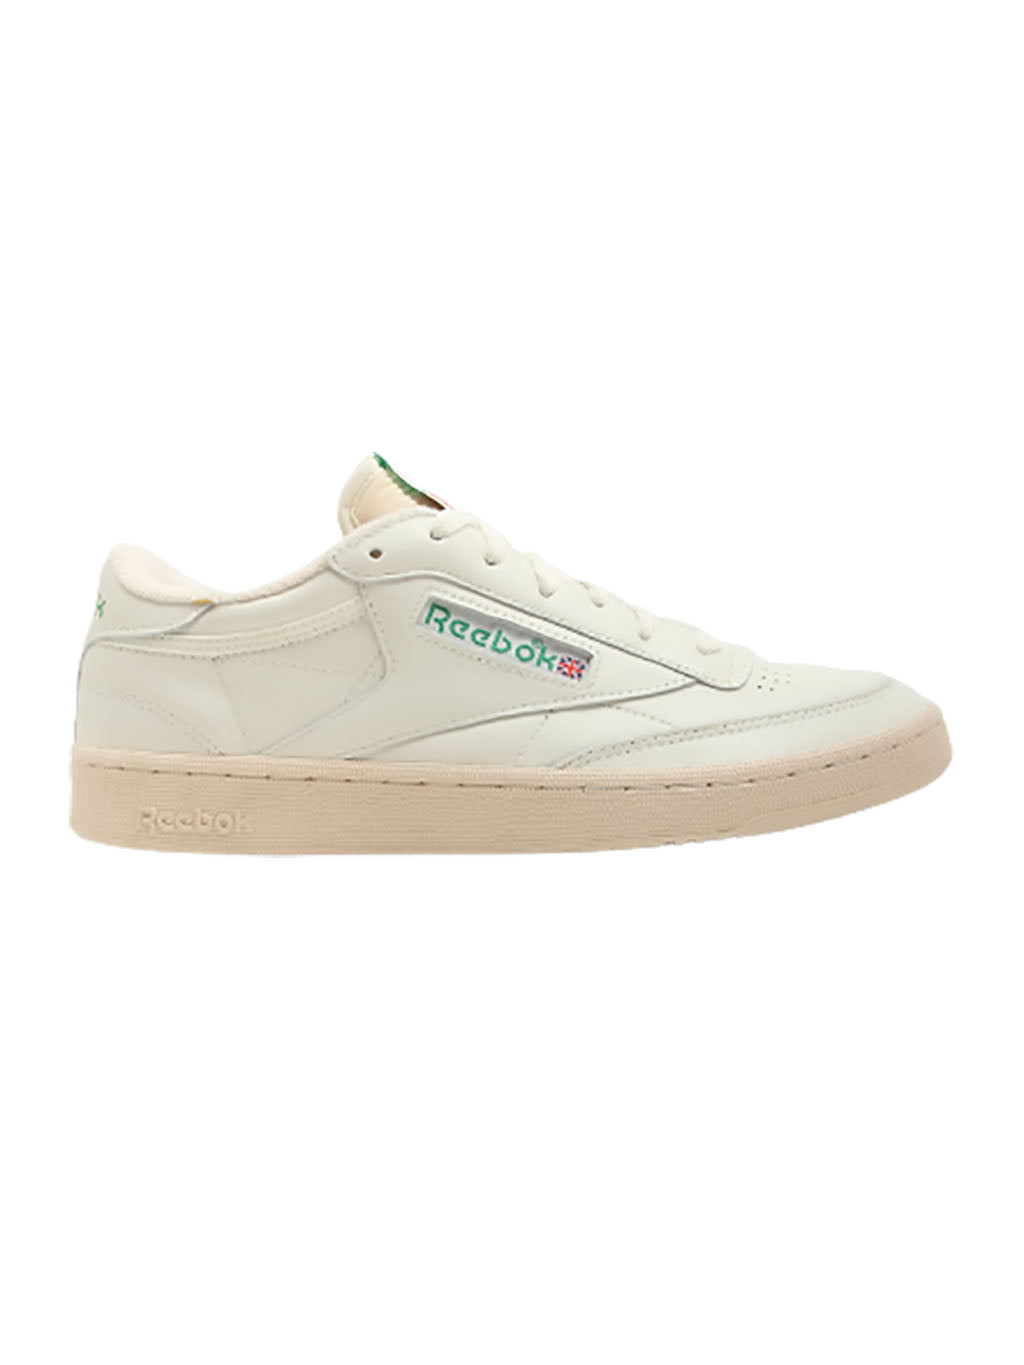 Off White Club C 85 Vintage Sneakers